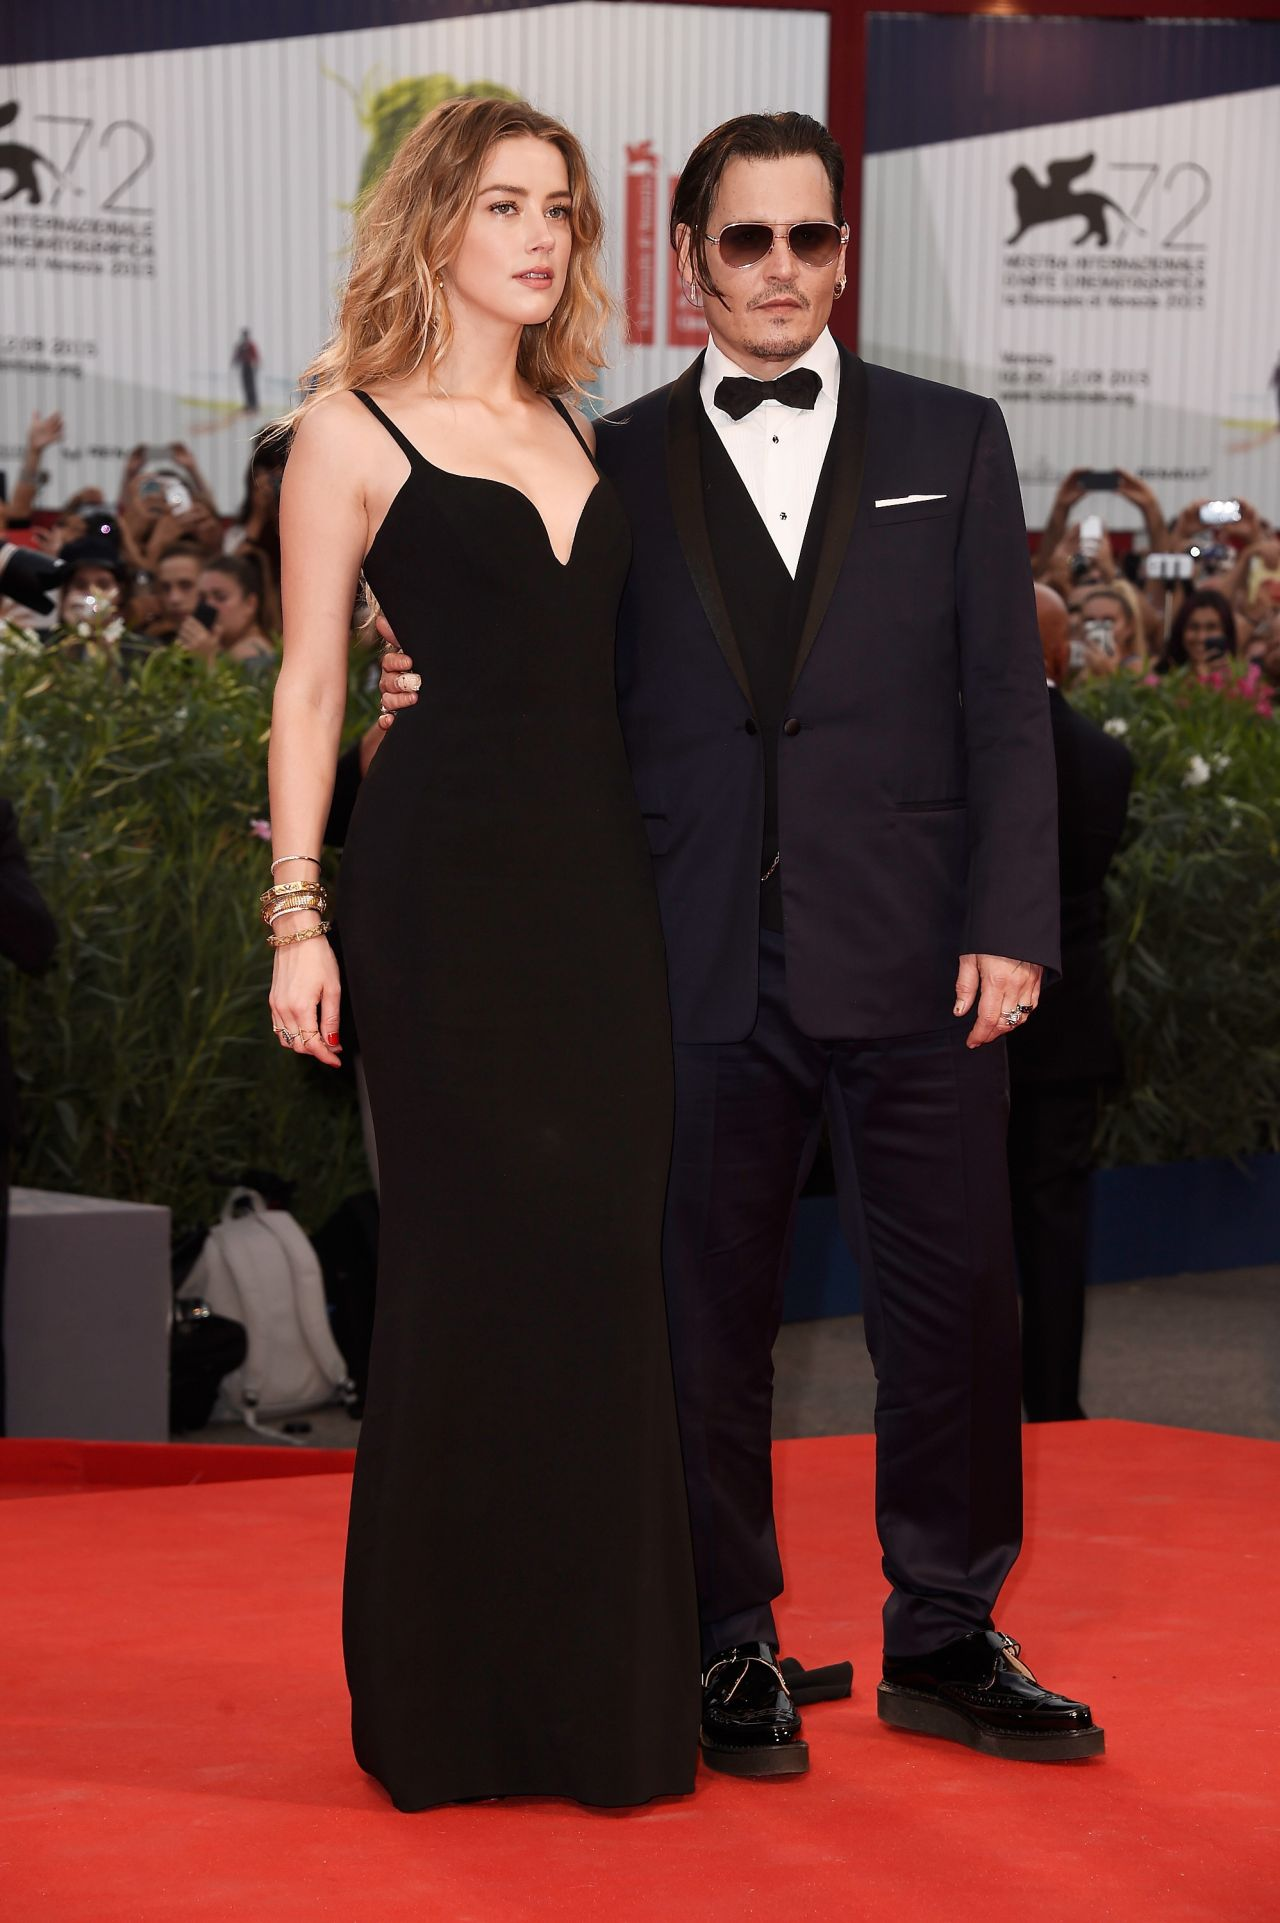 amber-heard-in-stella-mccartney-johnny-depp-in-dior-homme-black-mass-venice-film-festival-premiere